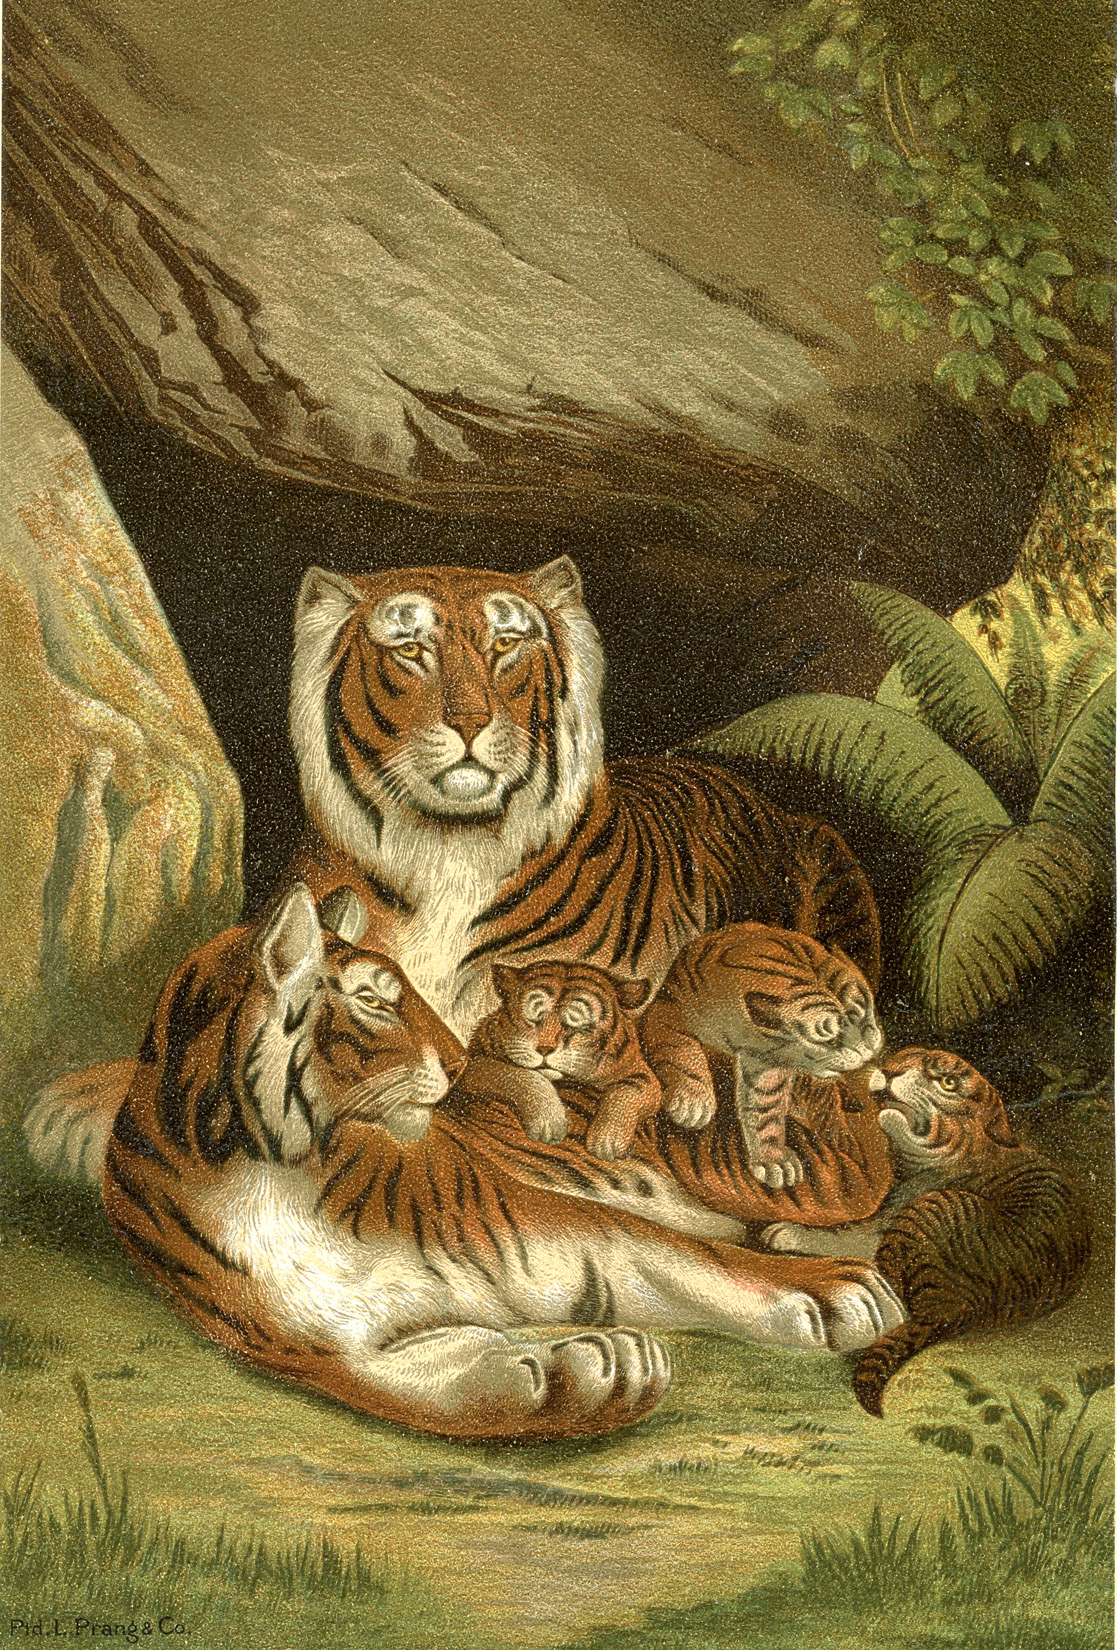 This is an image of Eloquent Printable Tiger Pictures